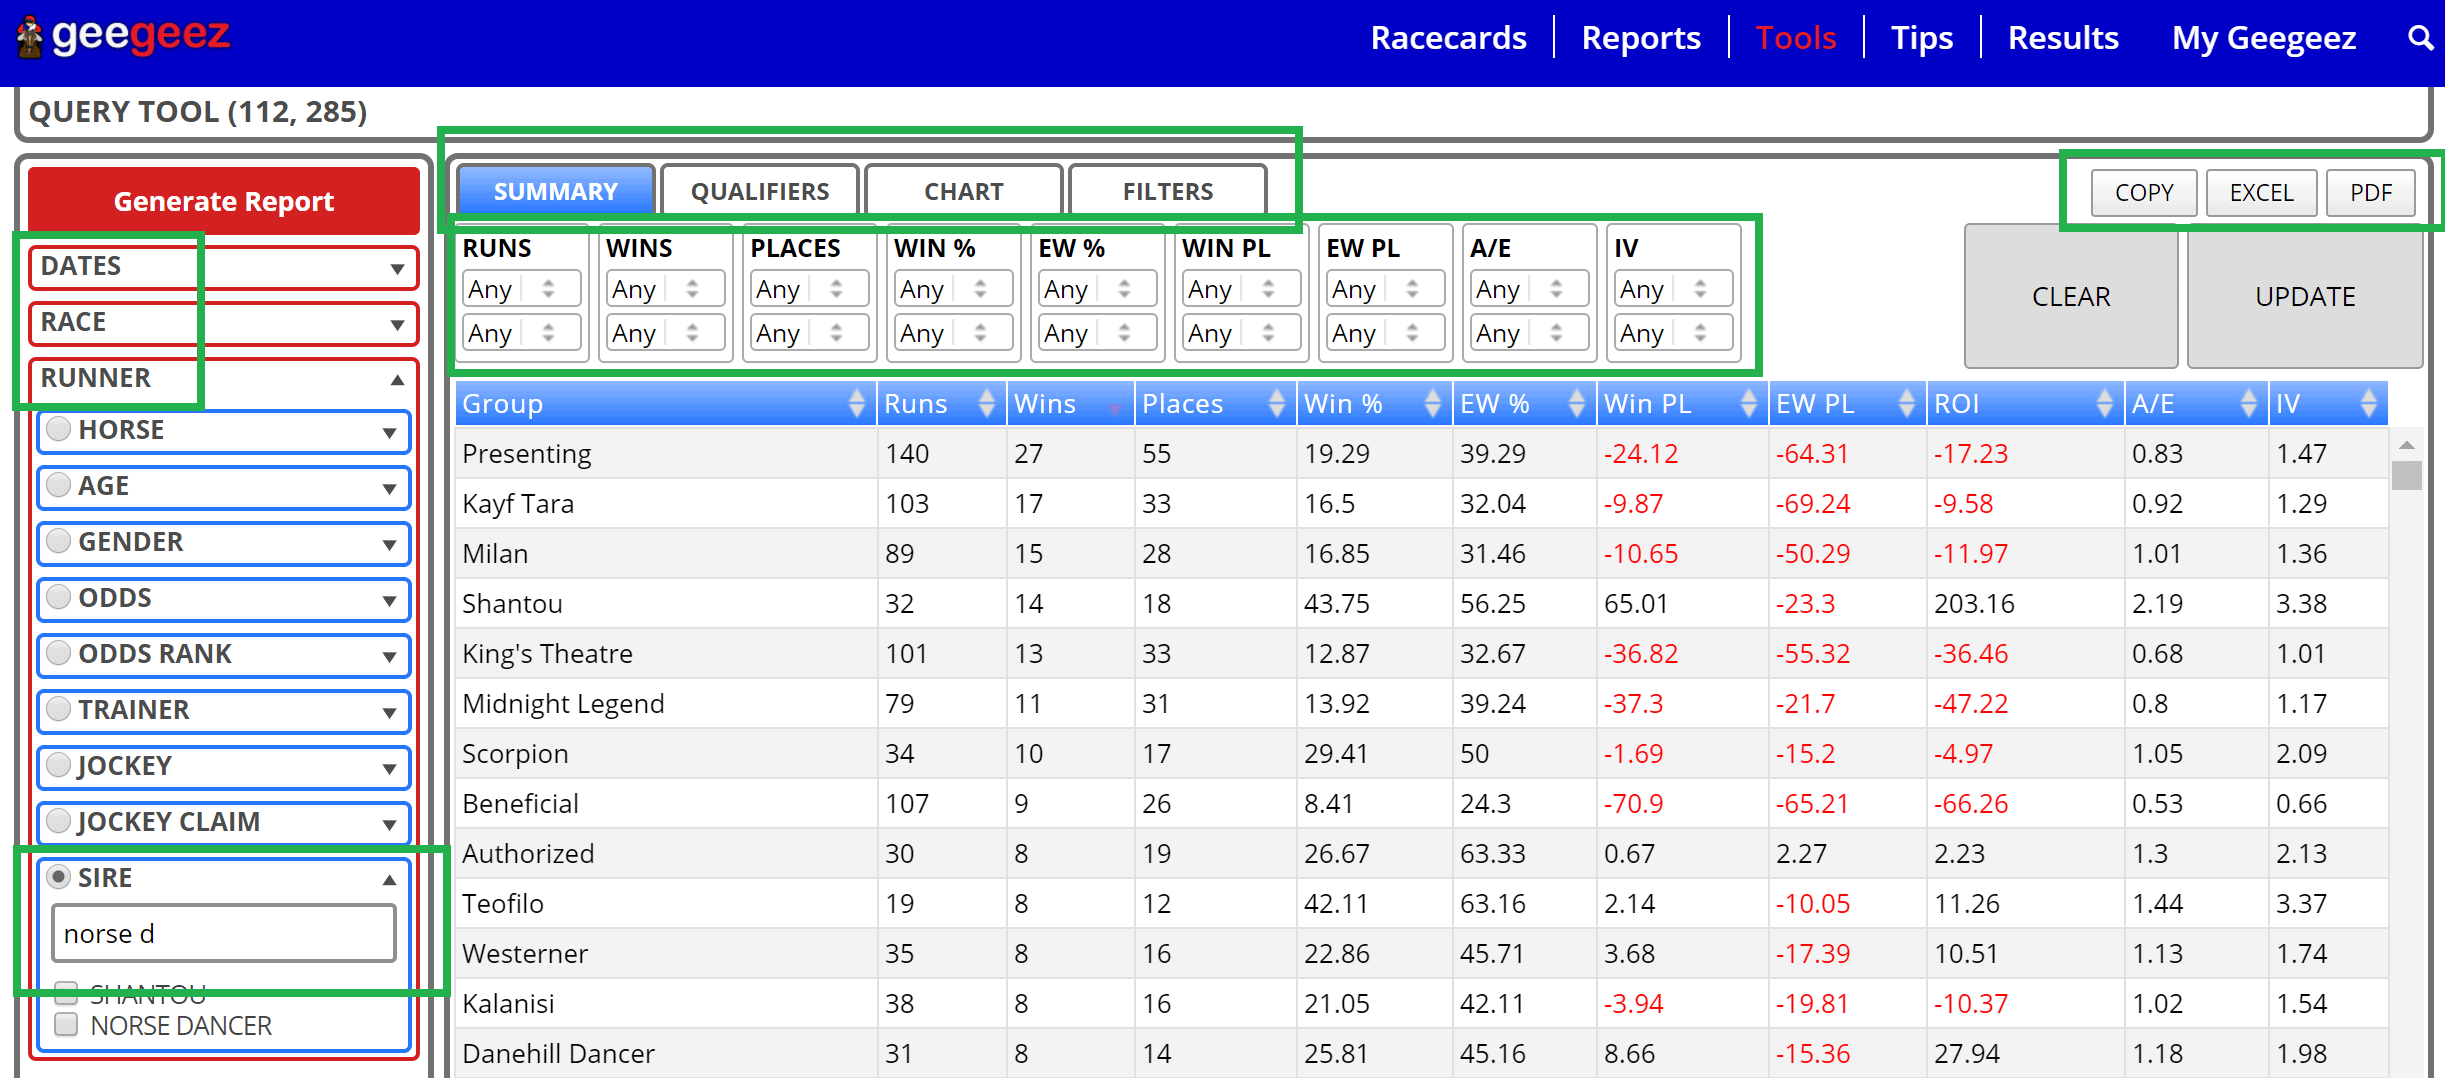 A world of racing data at your fingertips, in a single view: that's Geegeez Query Tool